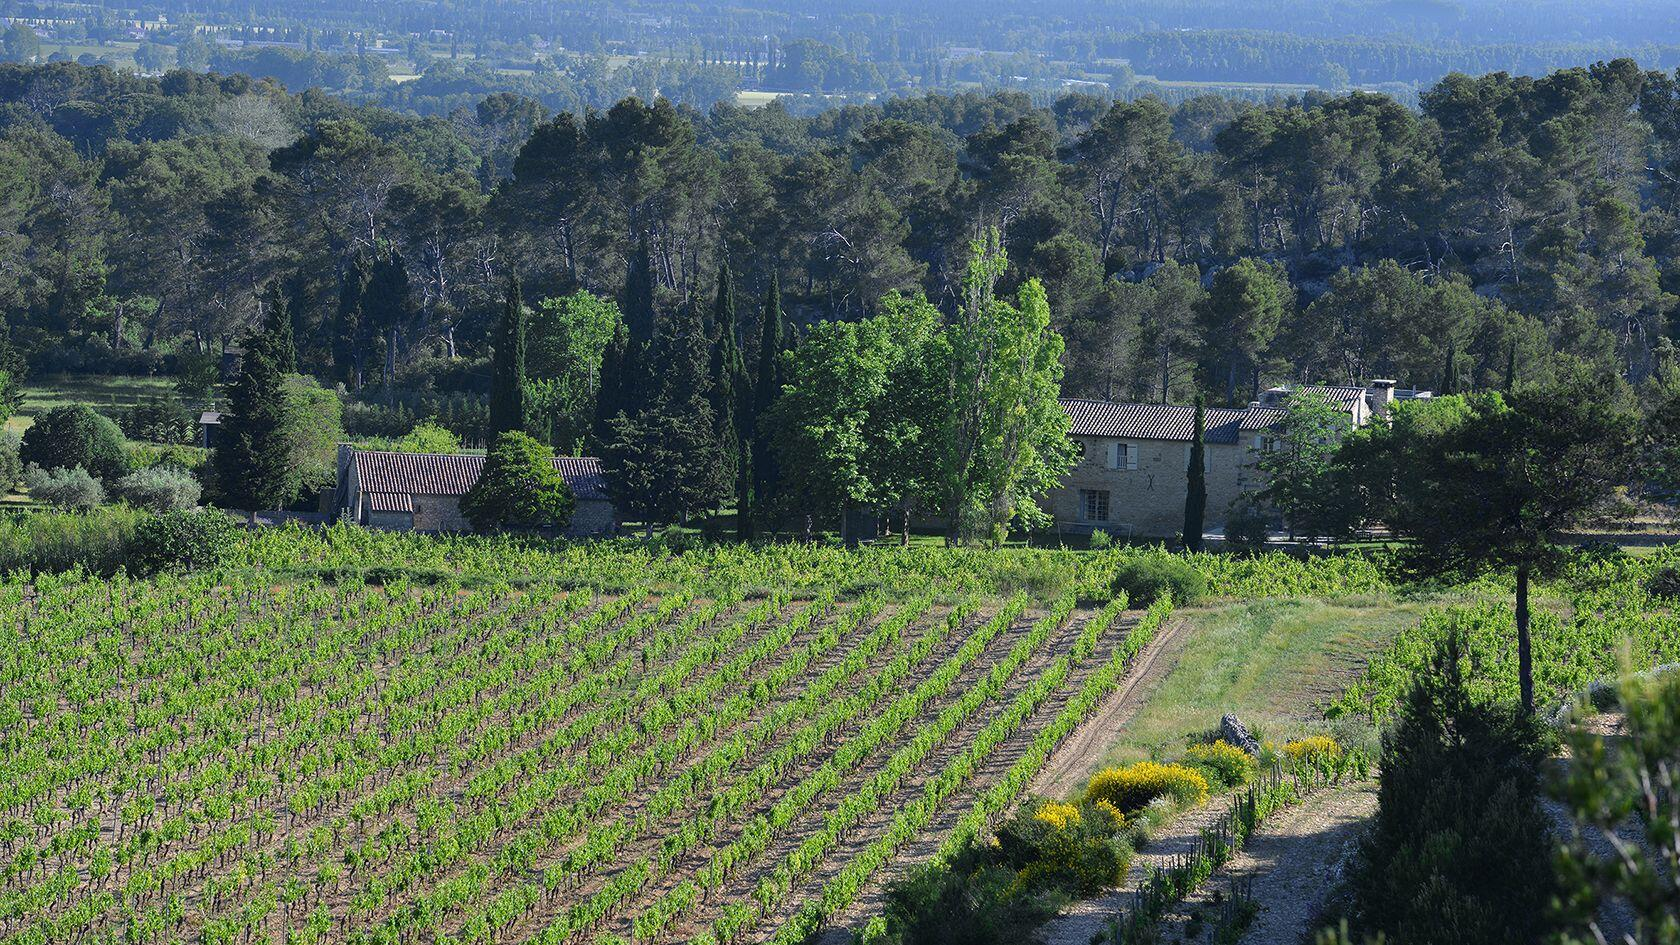 Domaine de Trévallon Vineyard views